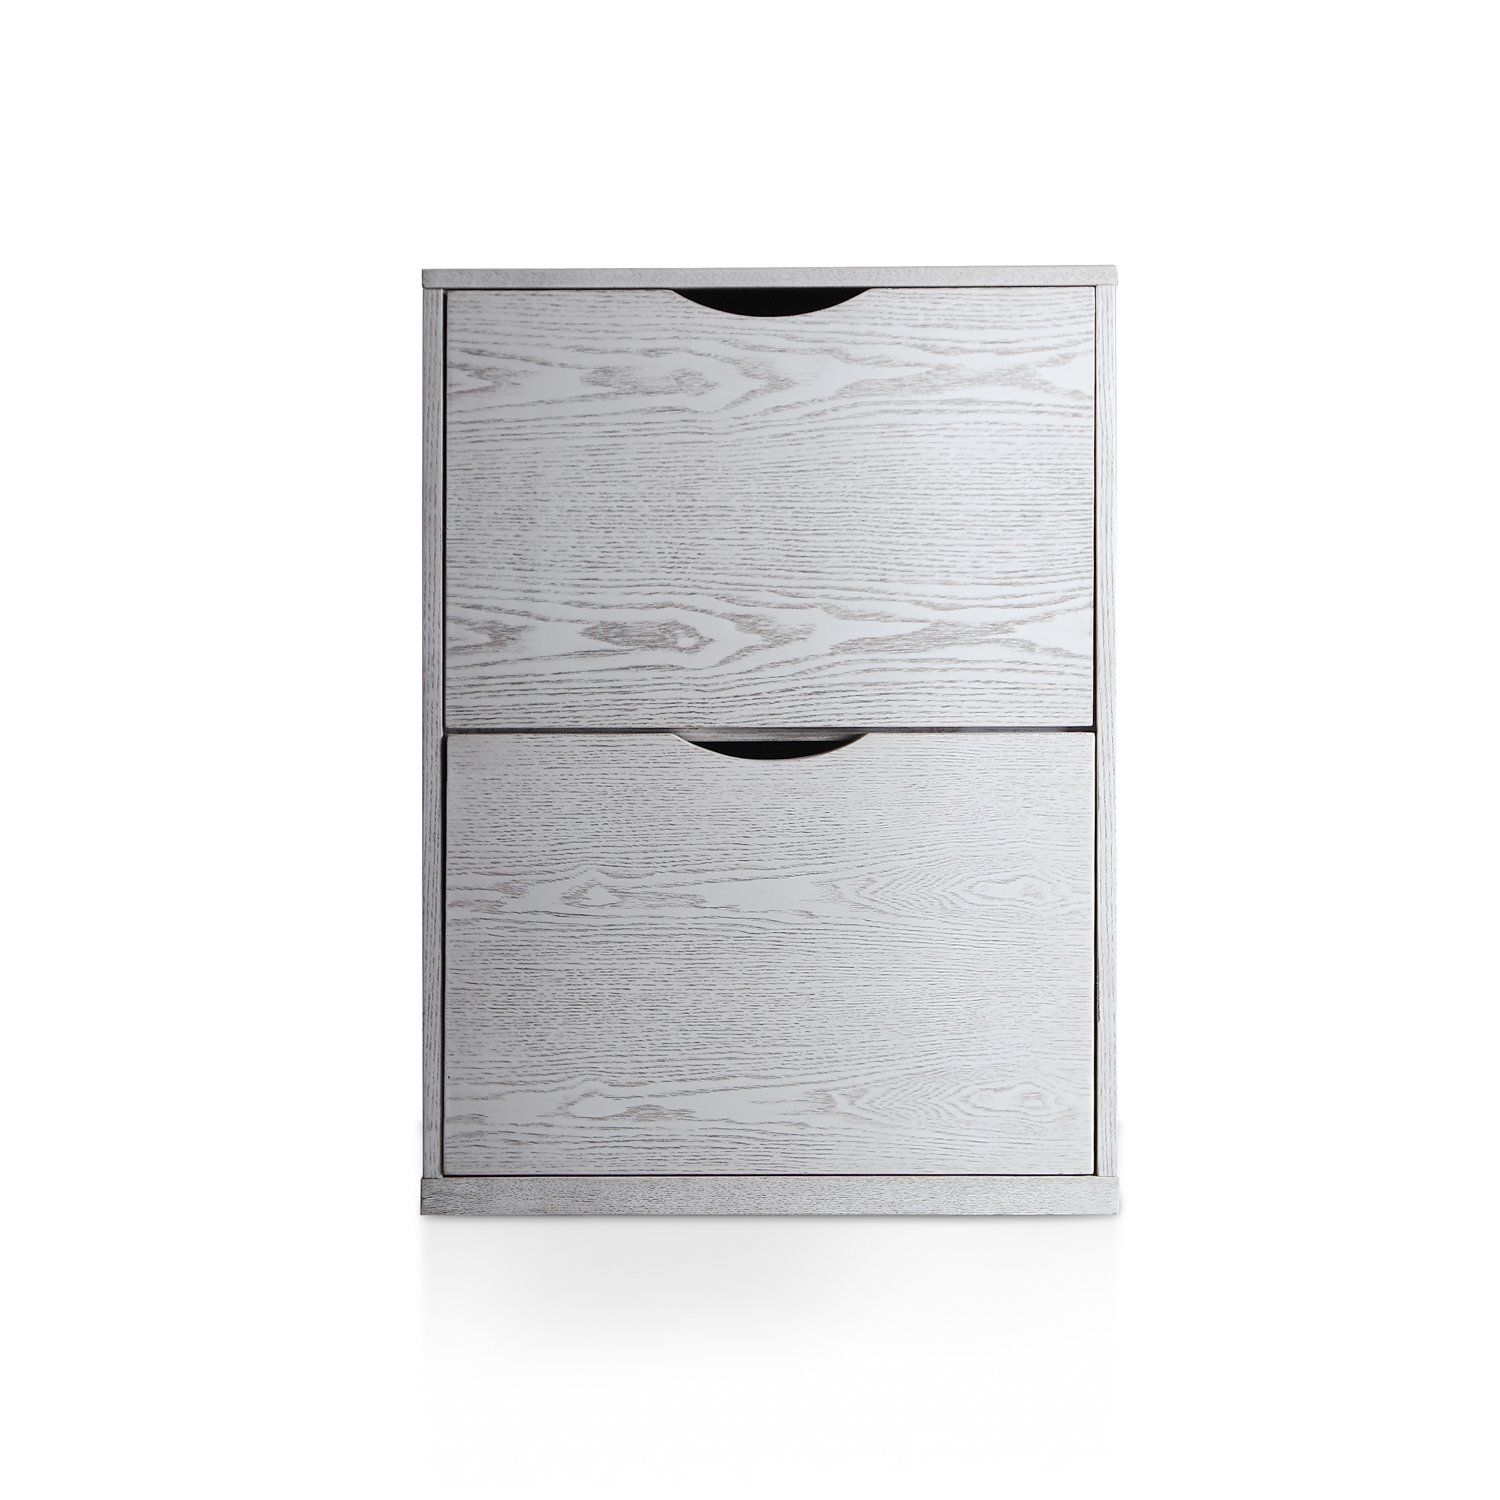 Haven Home Bauer File Cabinets in White Wash with 2 Filing Drawers Hives and Honey 6006-464